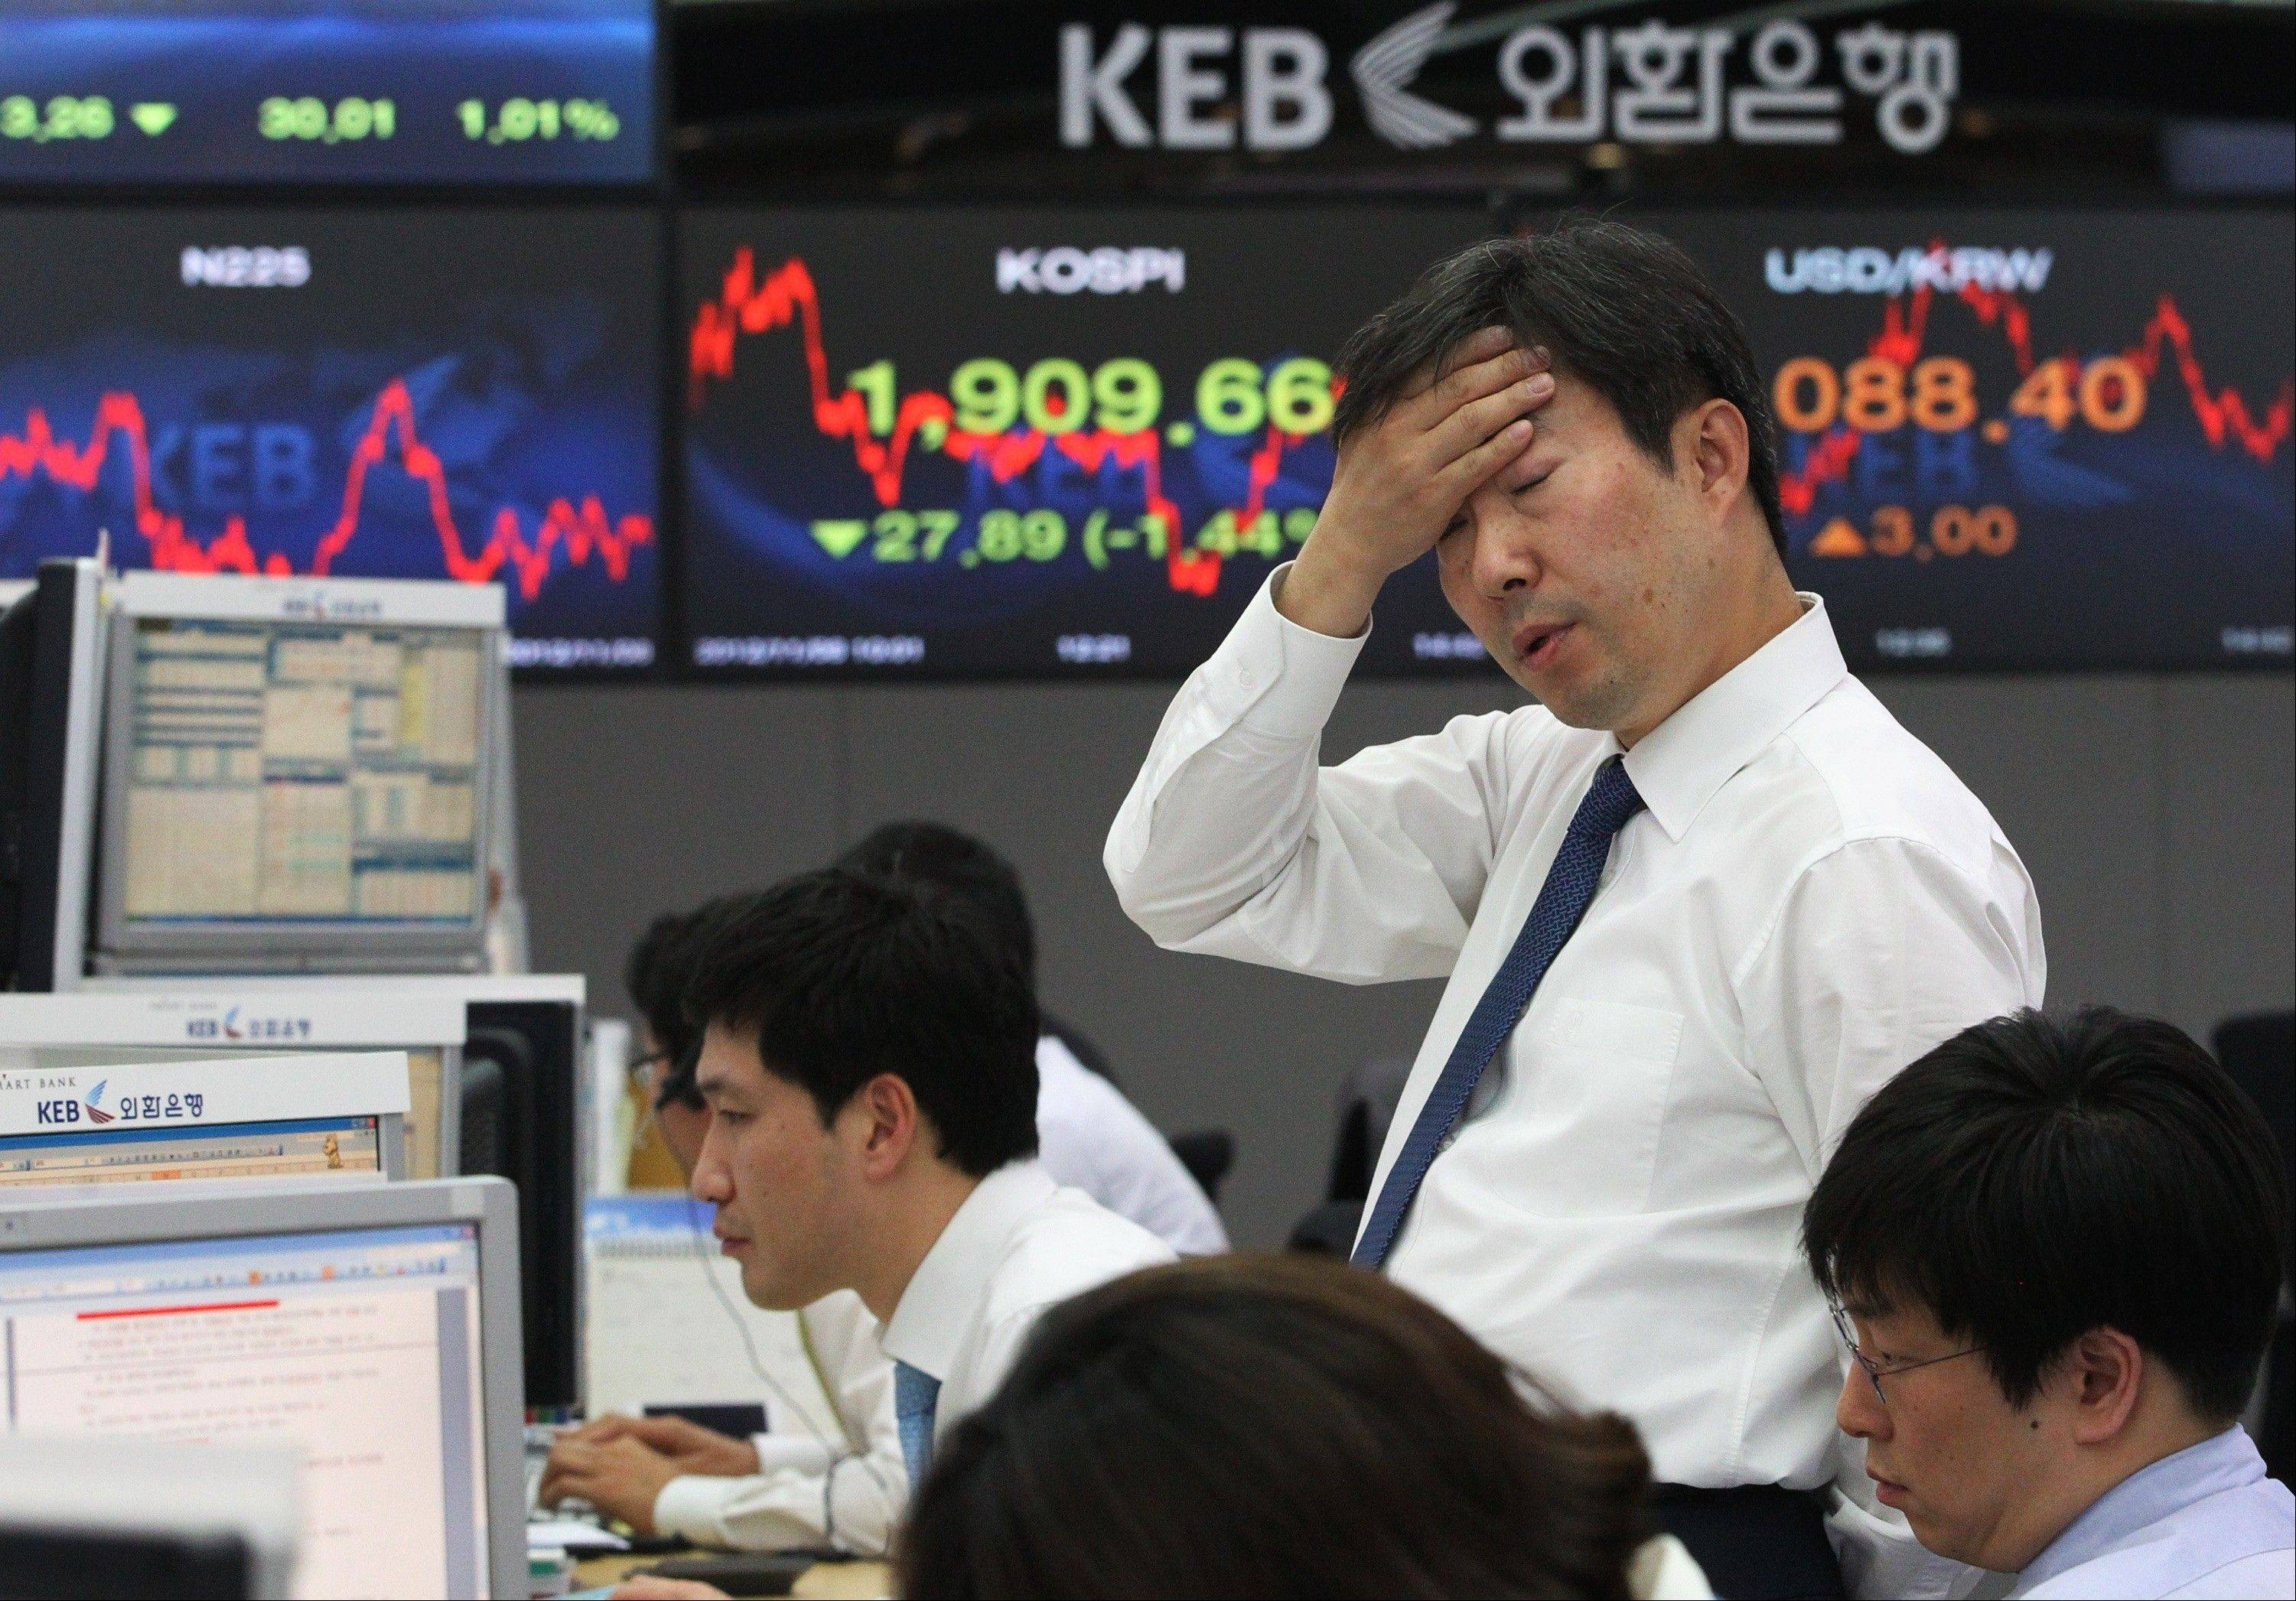 A currency trader reacts in front of screens showing the Korea Composite Stock Price Index (KOSPI), center, and foreign exchange rate, right, at the foreign exchange dealing room of the Korea Exchange Bank headquarters in Seoul, South Korea, Thursday, Nov. 8, 2012. South Korea�s Kospi dropped 1.19 percent at 1,914.43.